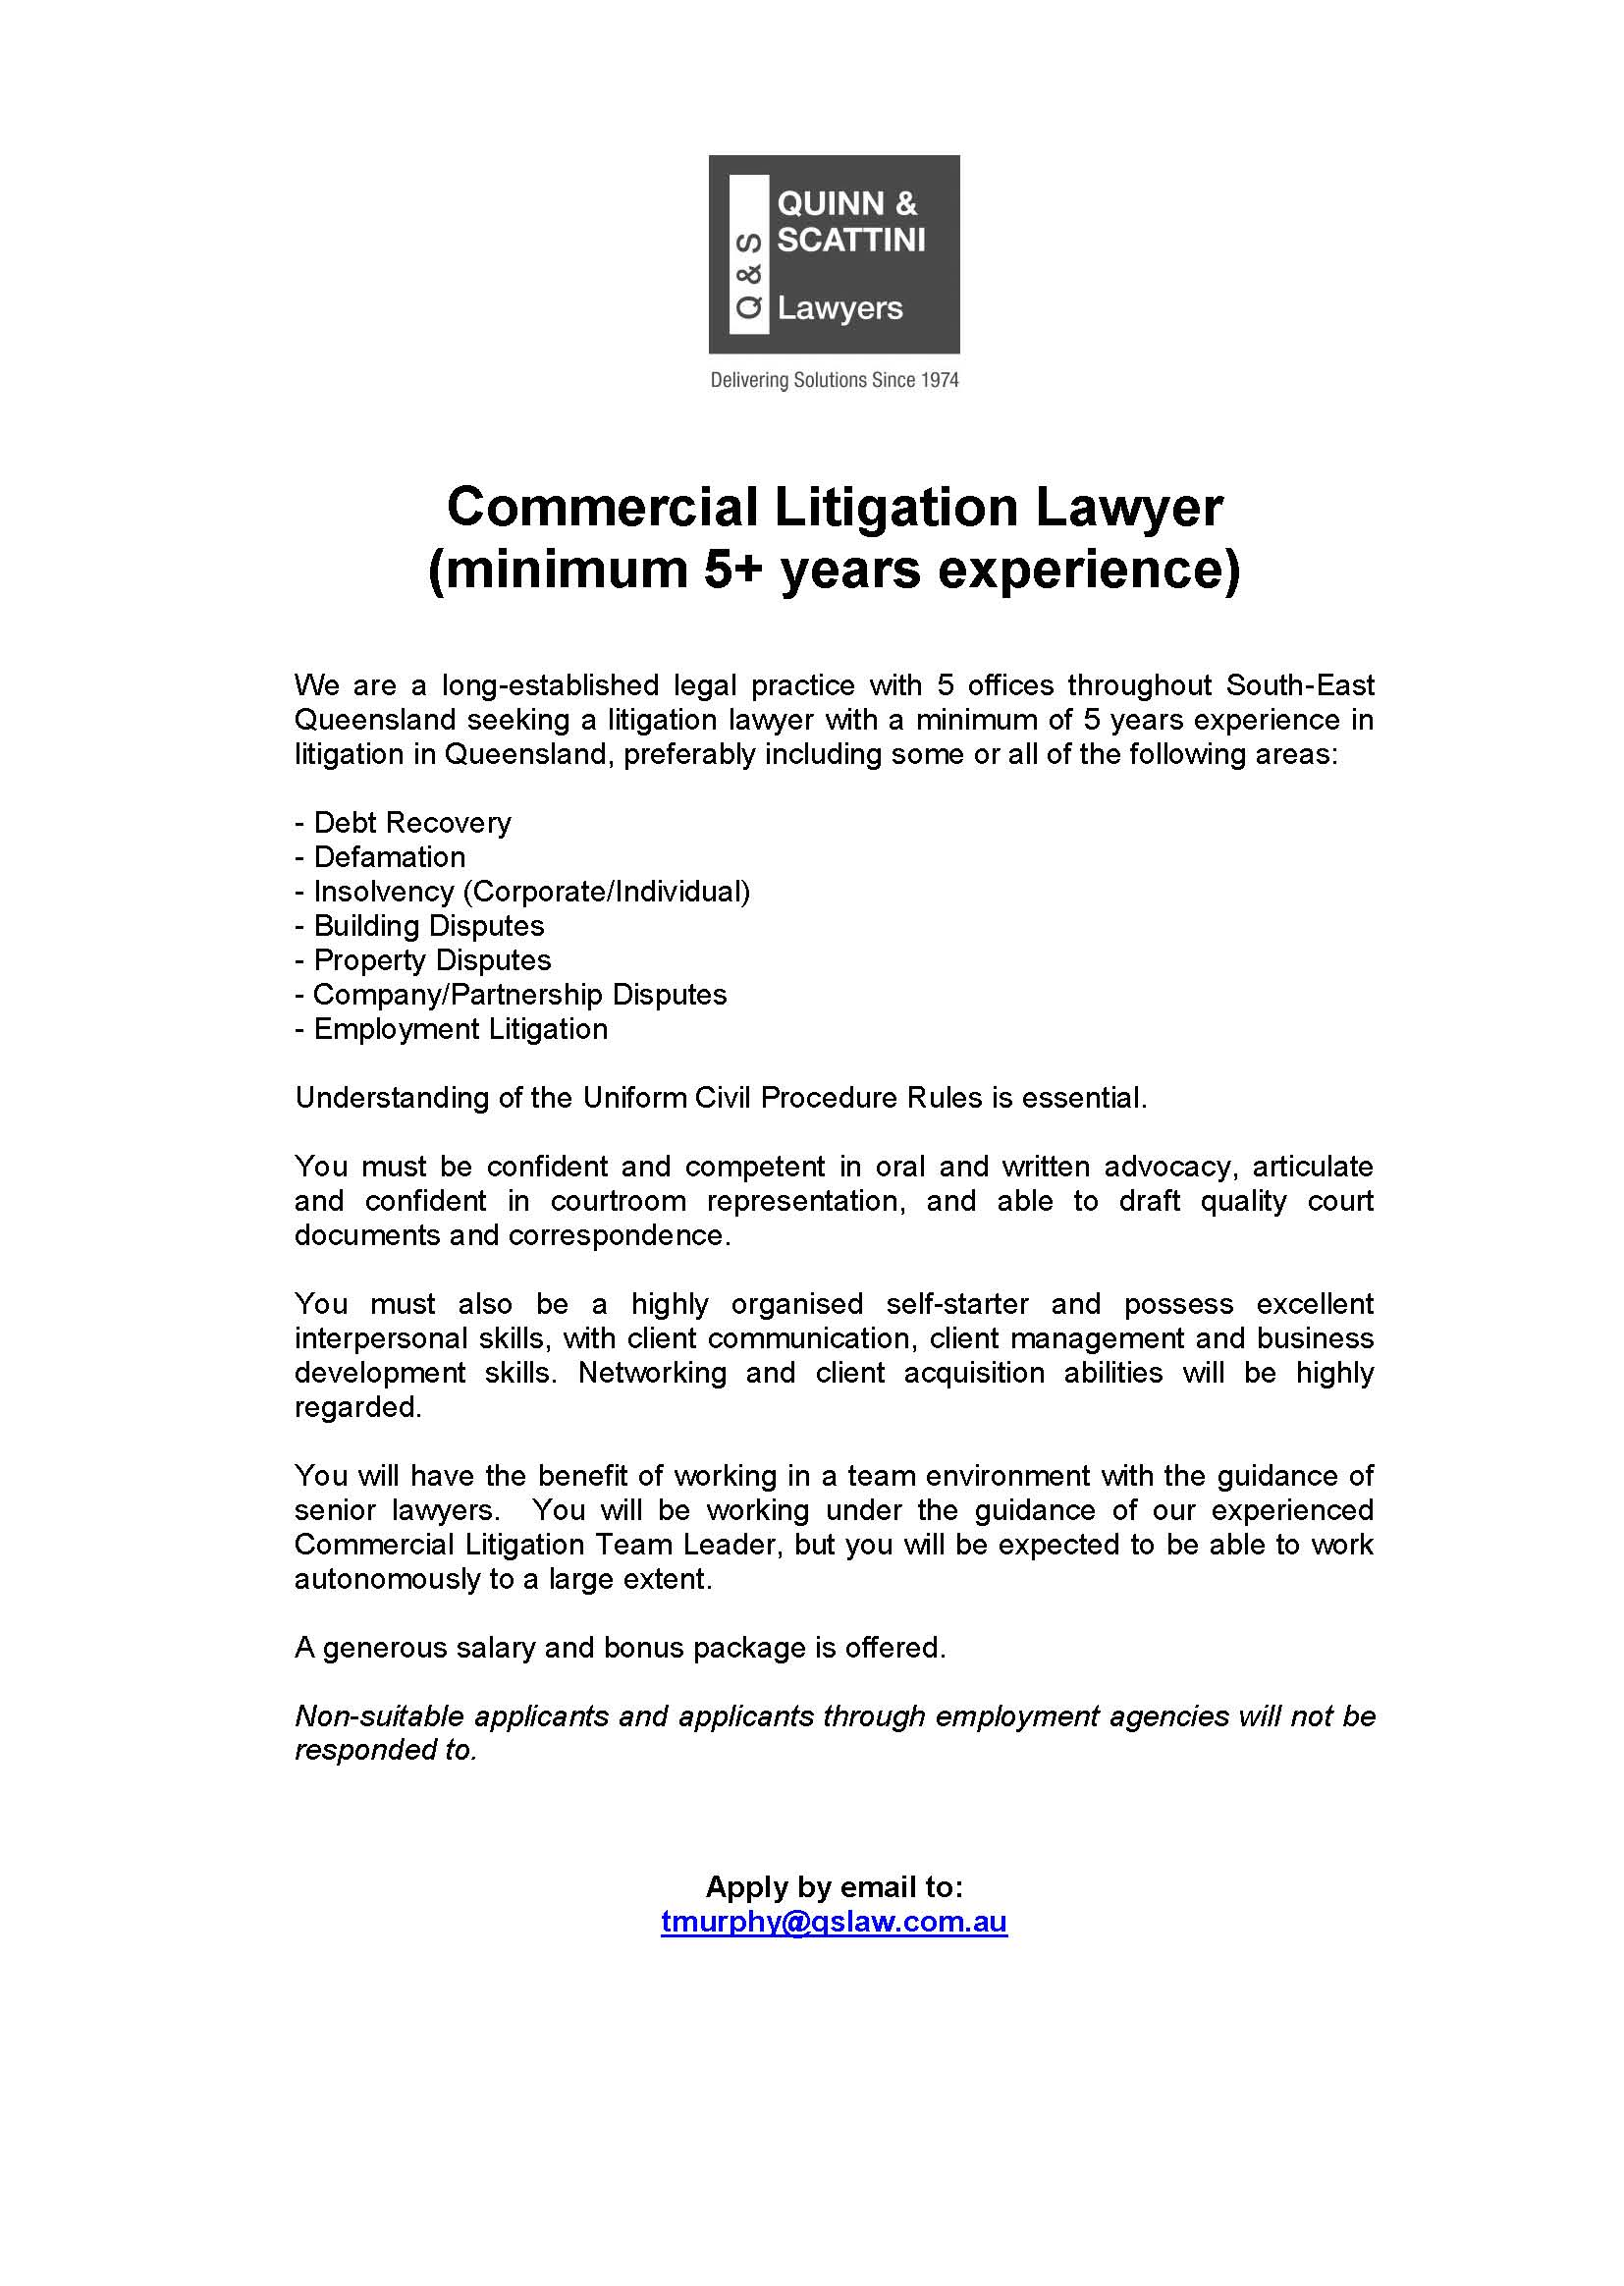 Commercial Litigation Lawyer Hiring